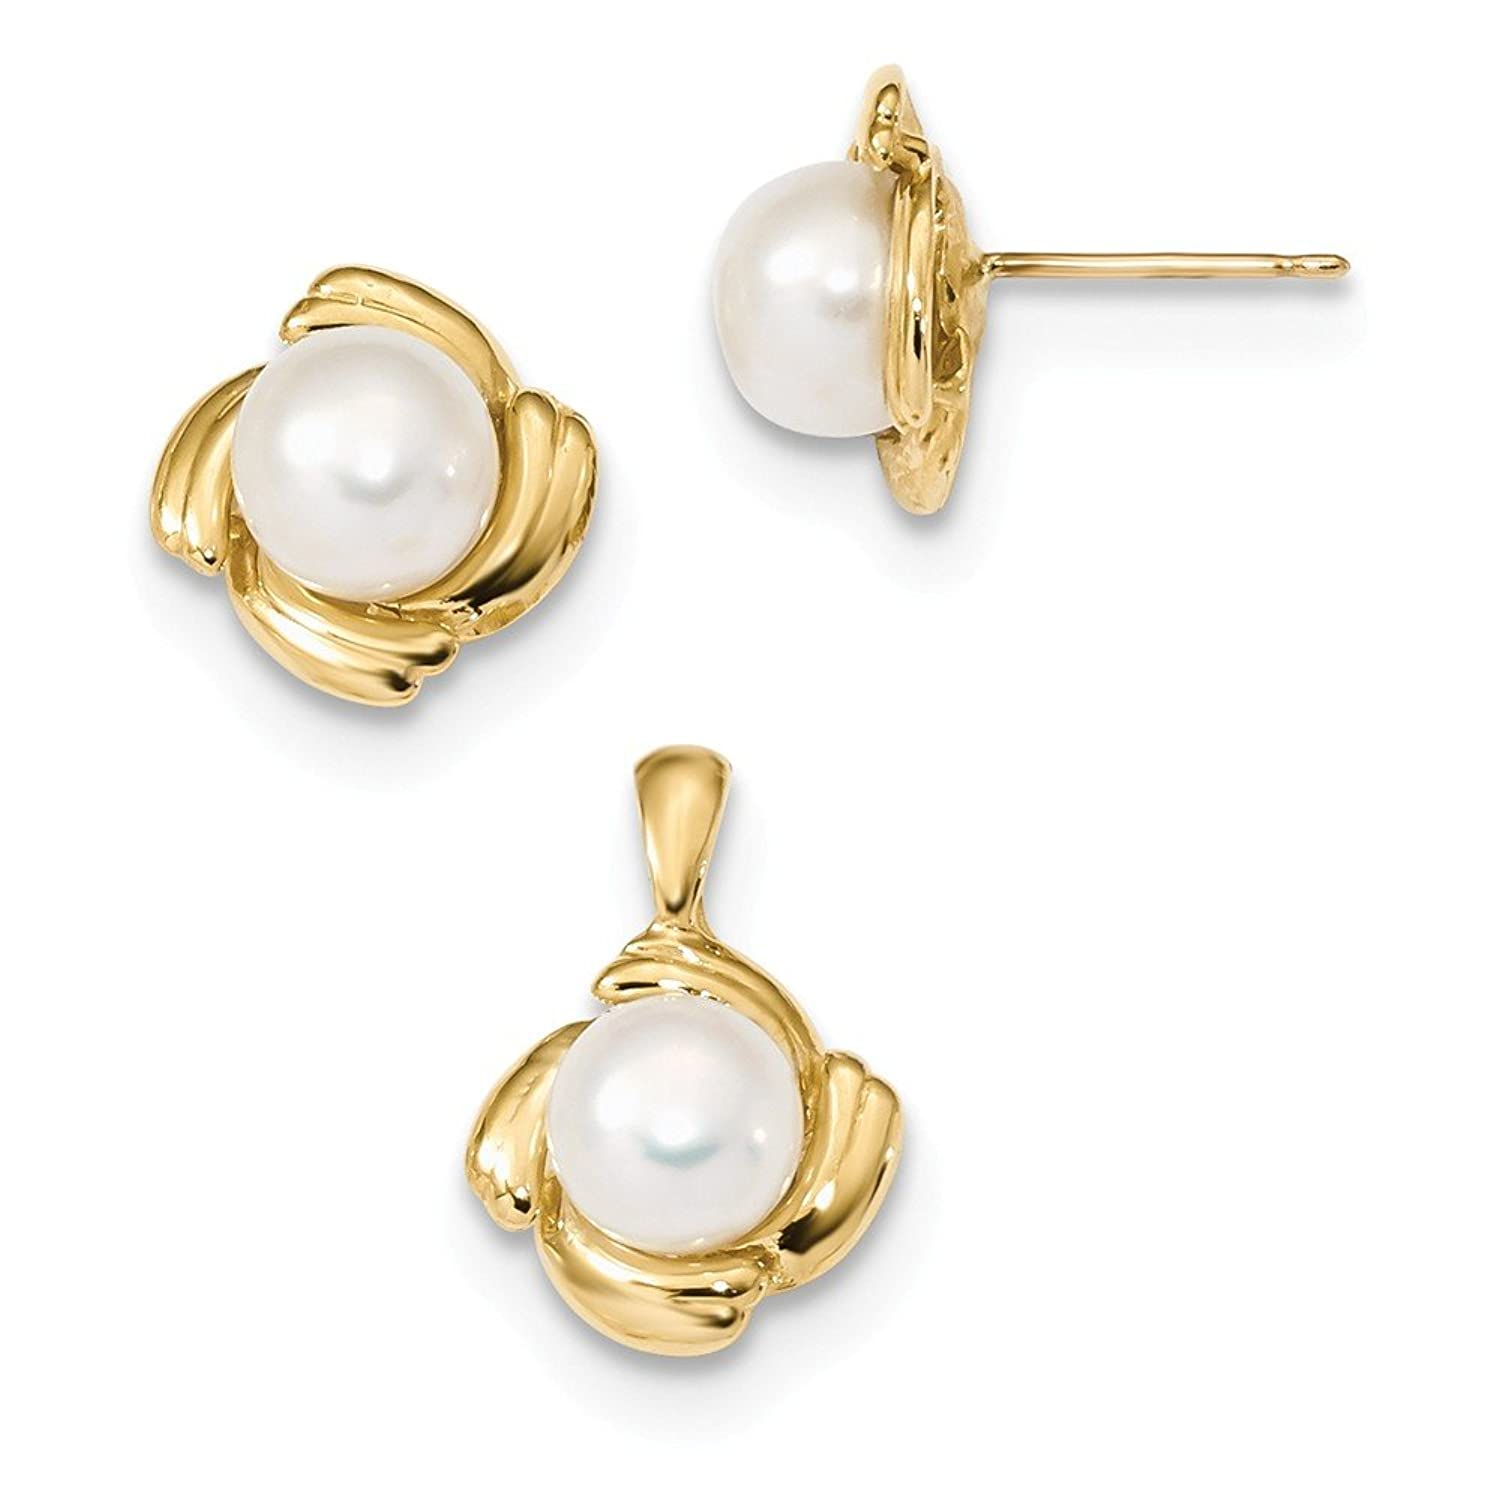 14k 6-7mm White Button FWC Pearl Earring and Pendant Set